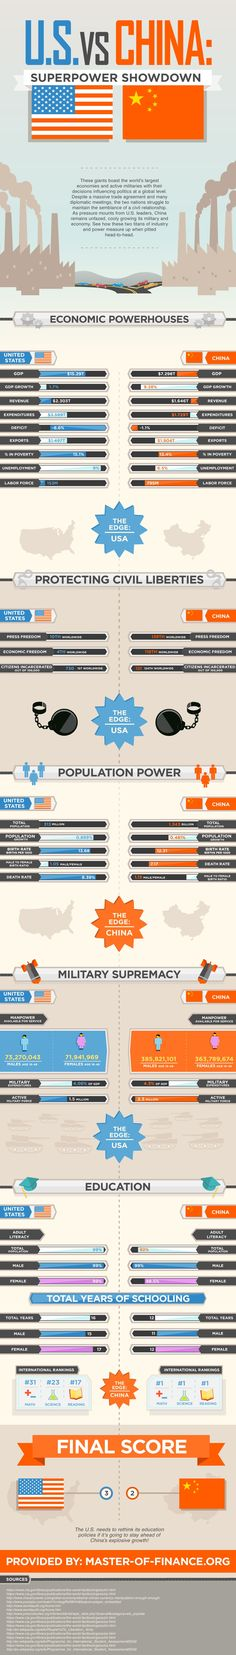 U.S. vs China #infographic